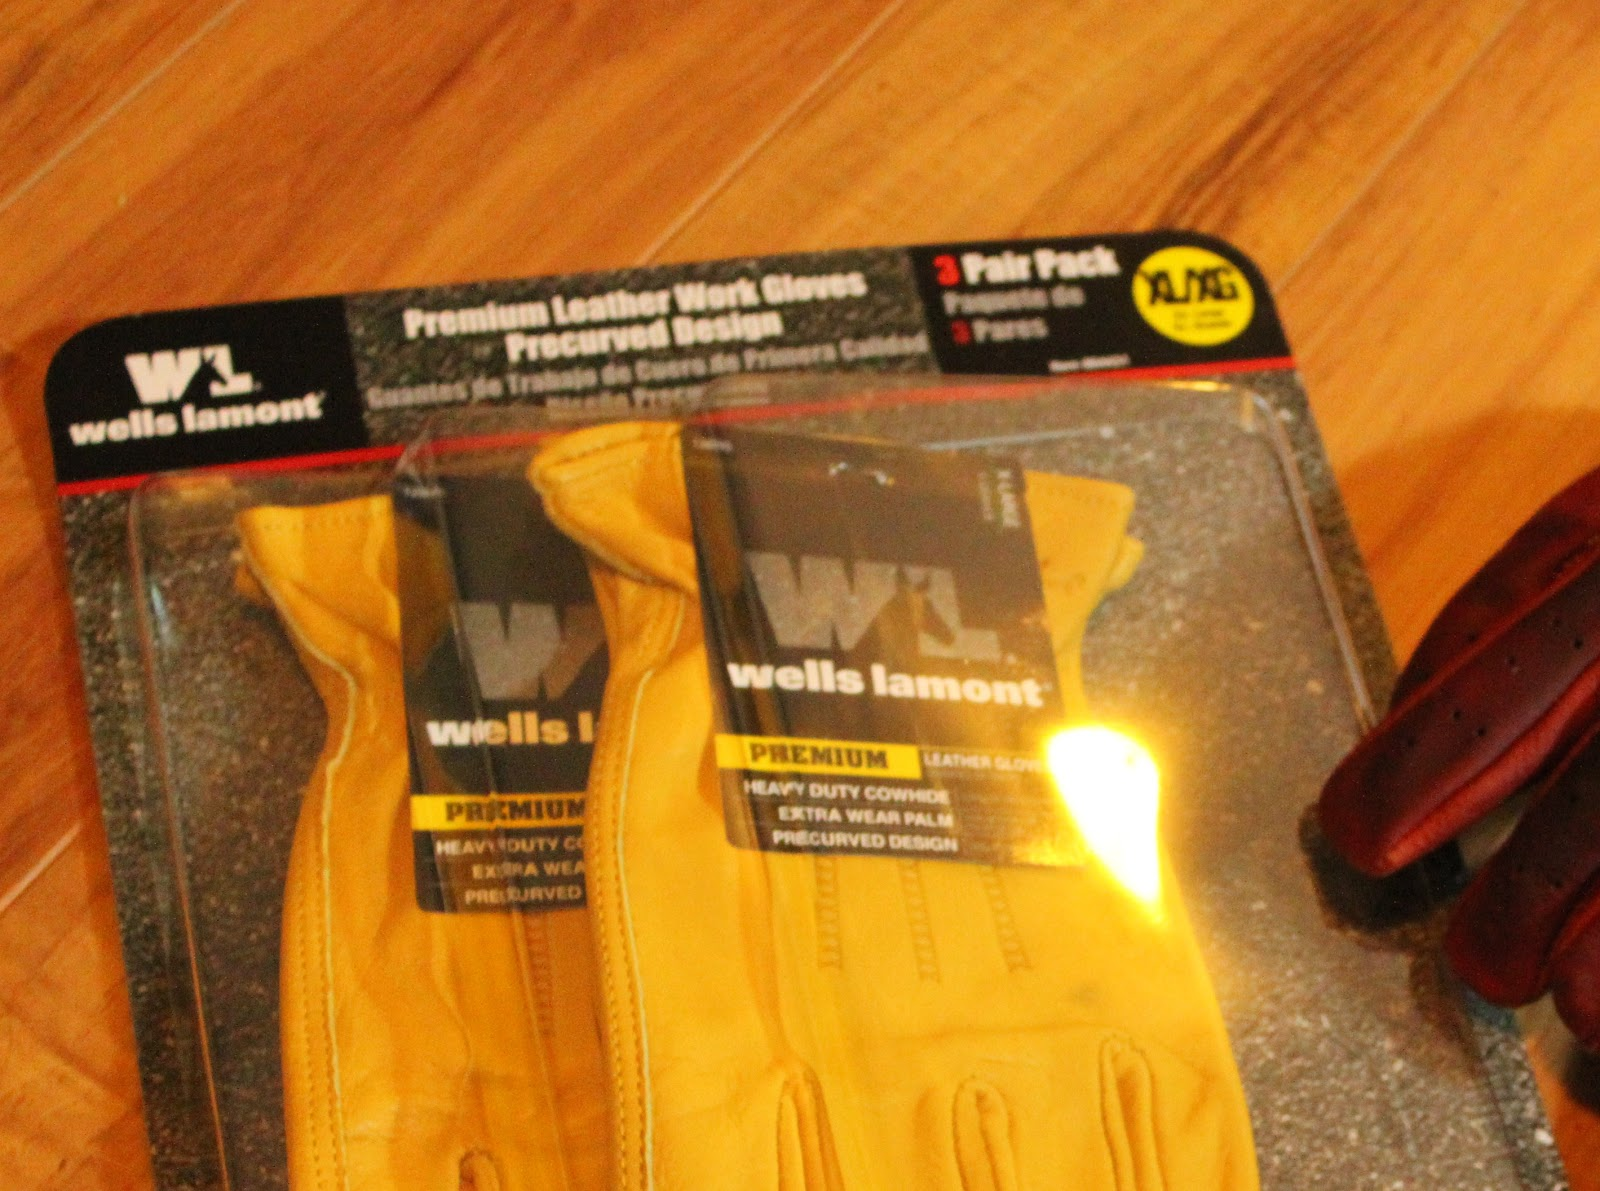 Deer hide leather work gloves - Nice Deerhide Leather Work Gloves In Threepacks From Costco So I Grabbed A Pair Of Scissors And A Hole Punch And Started Changing Them From Workgloves